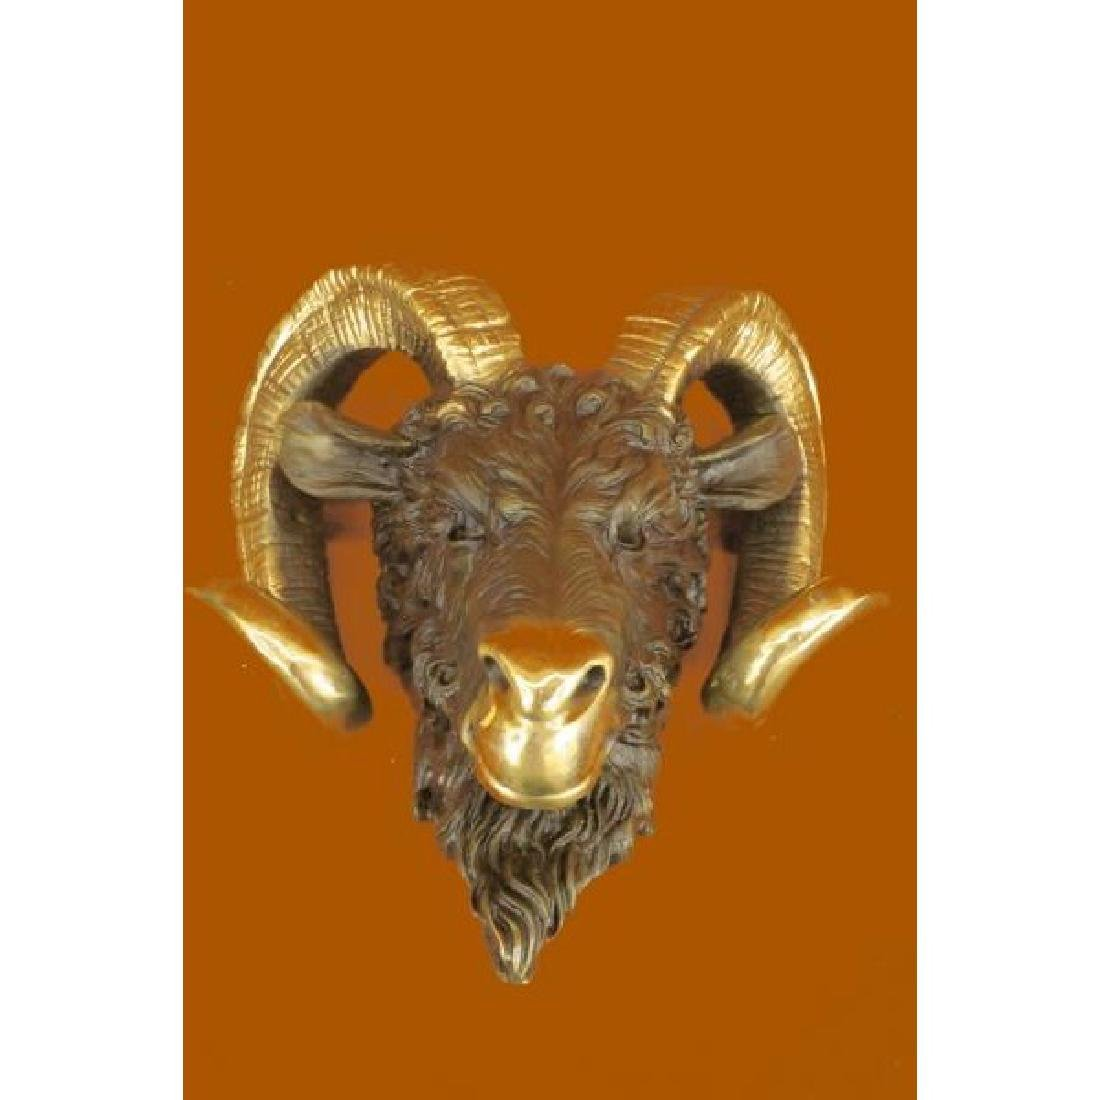 Mascot Ram Head Bronze Sculpture Marble Base Statue